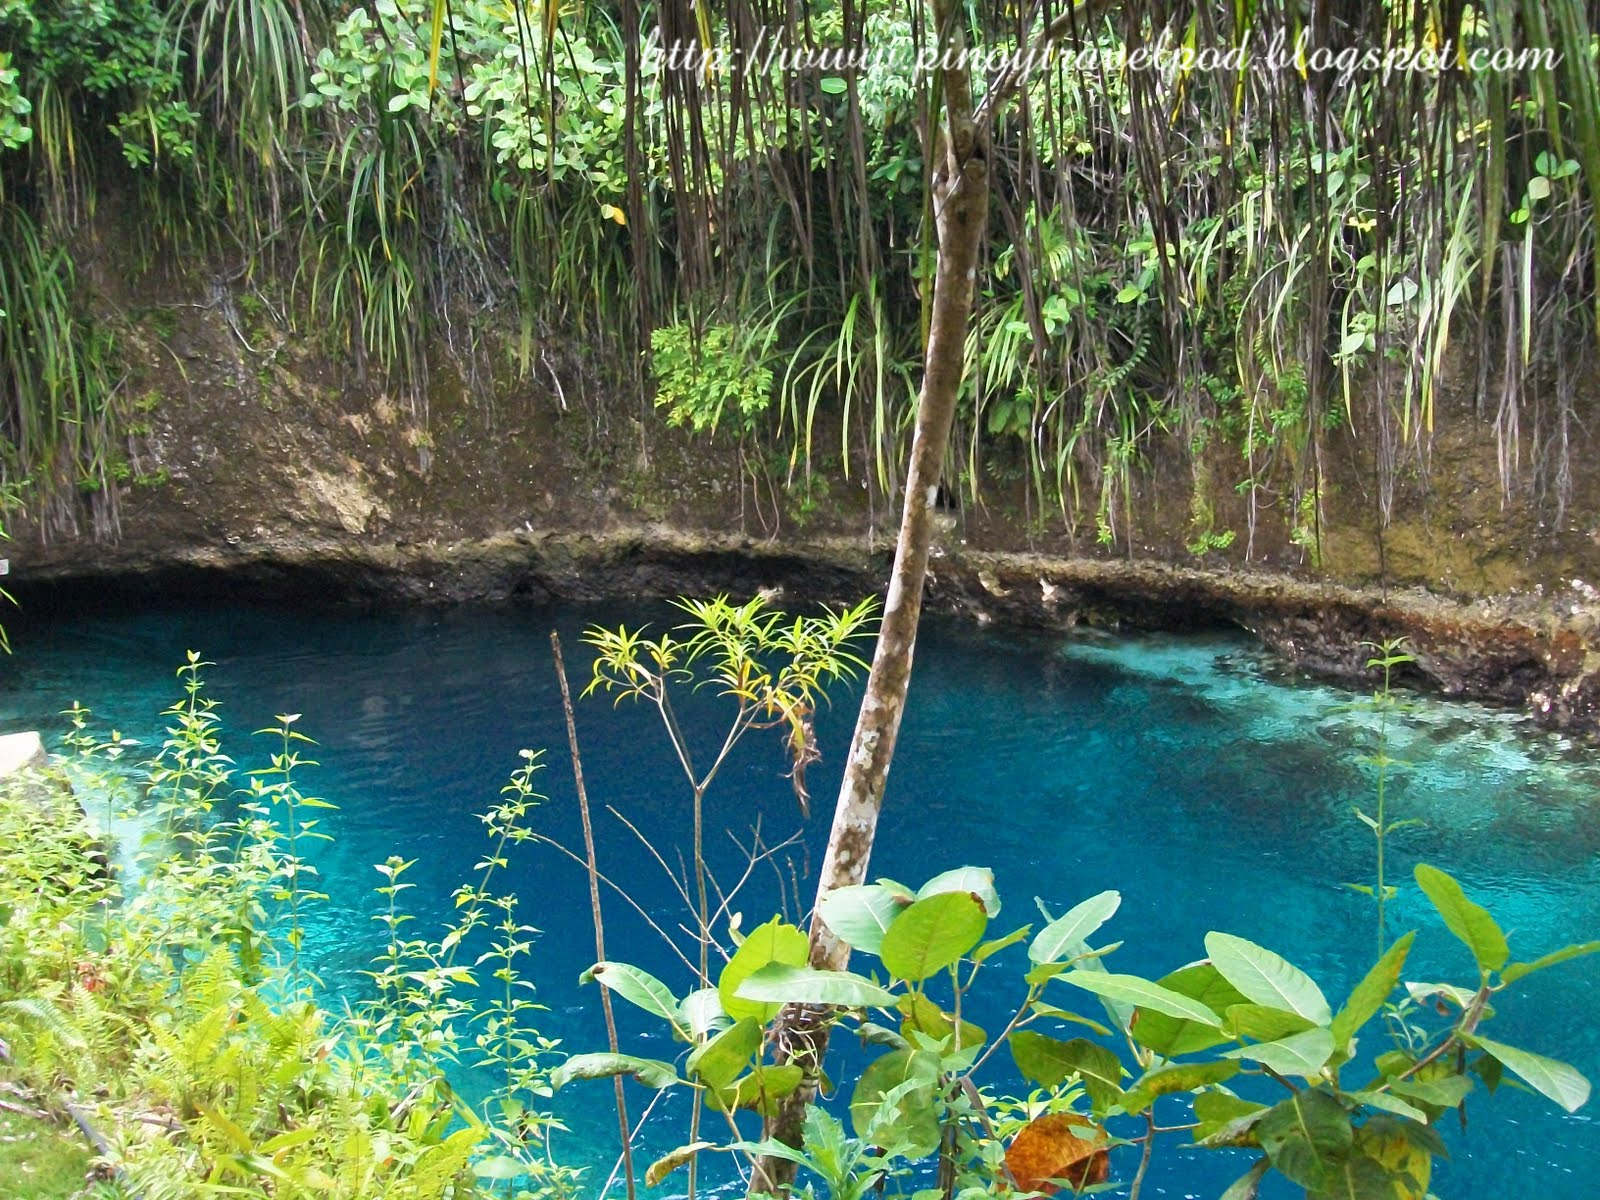 Enchanted River - Hinatuan, Surigao del Sur